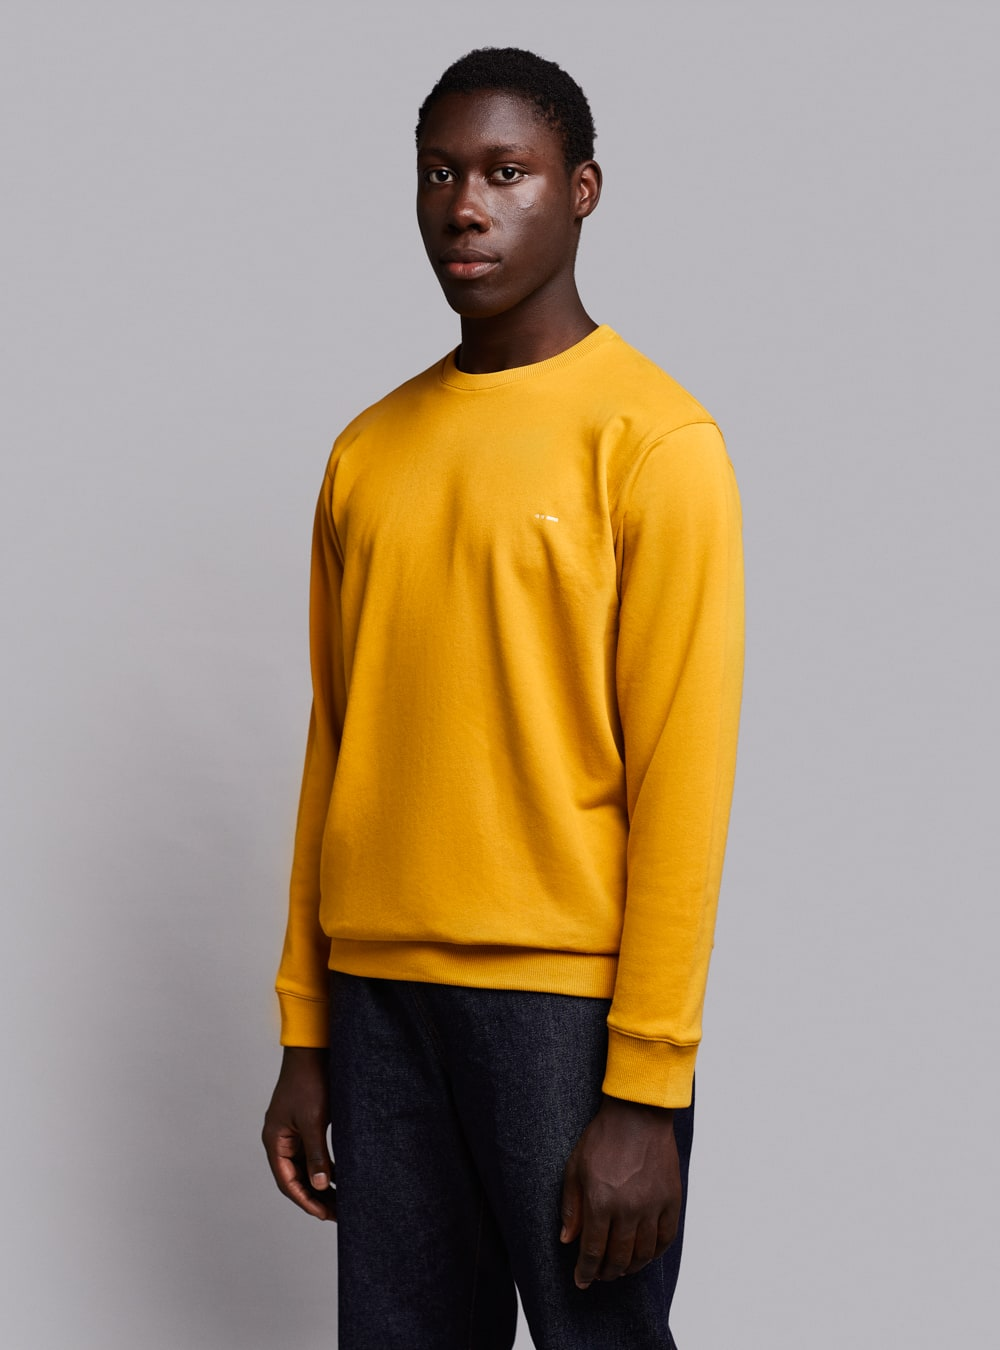 Essential sweatshirt (mustard) in organic cotton, made in Portugal by wetheknot.